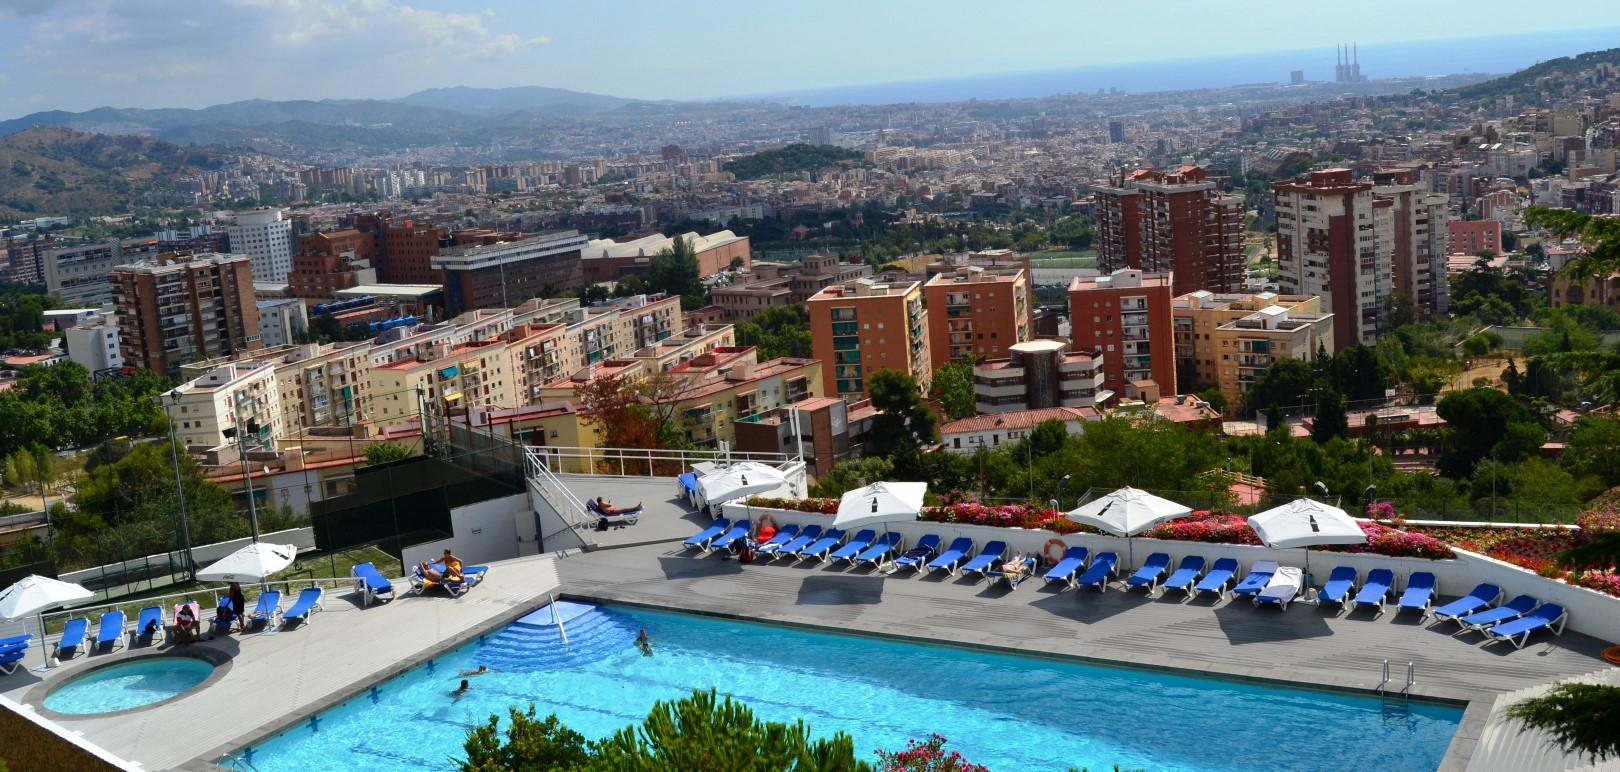 Cooling off at the best pools in barcelona citylife for Barcelona pool garden 4